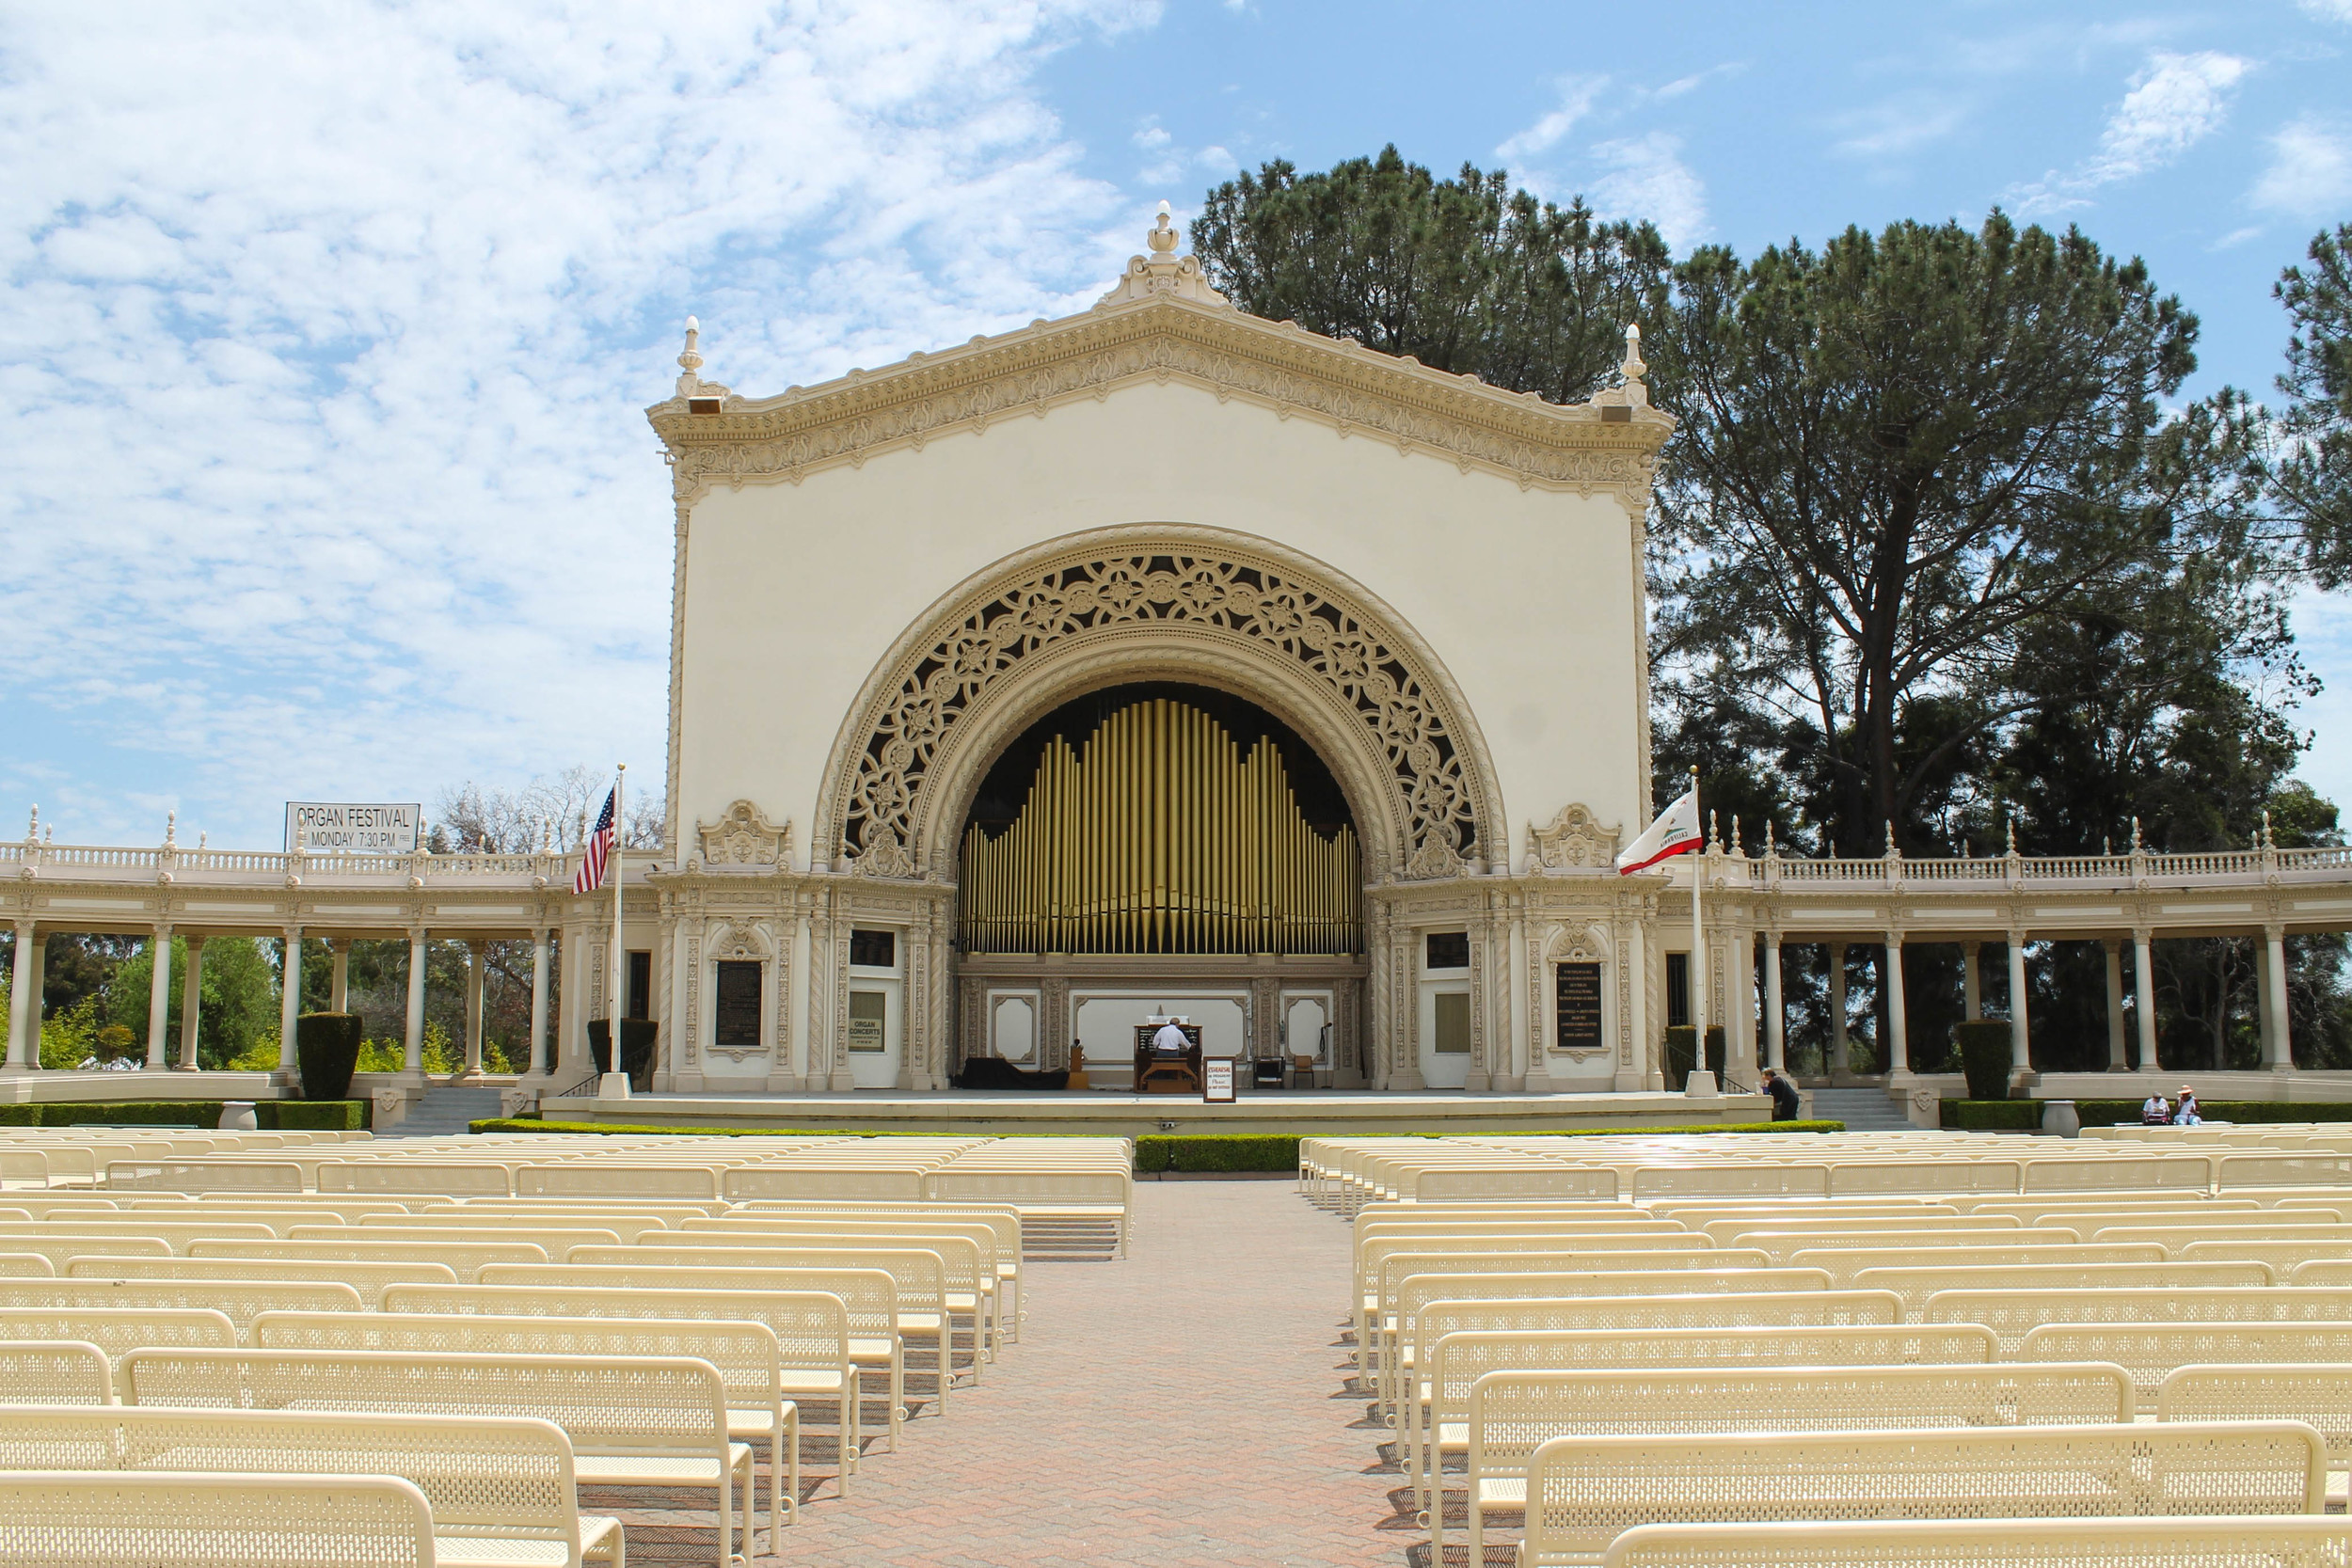 Giant organ practice in Balboa Park.